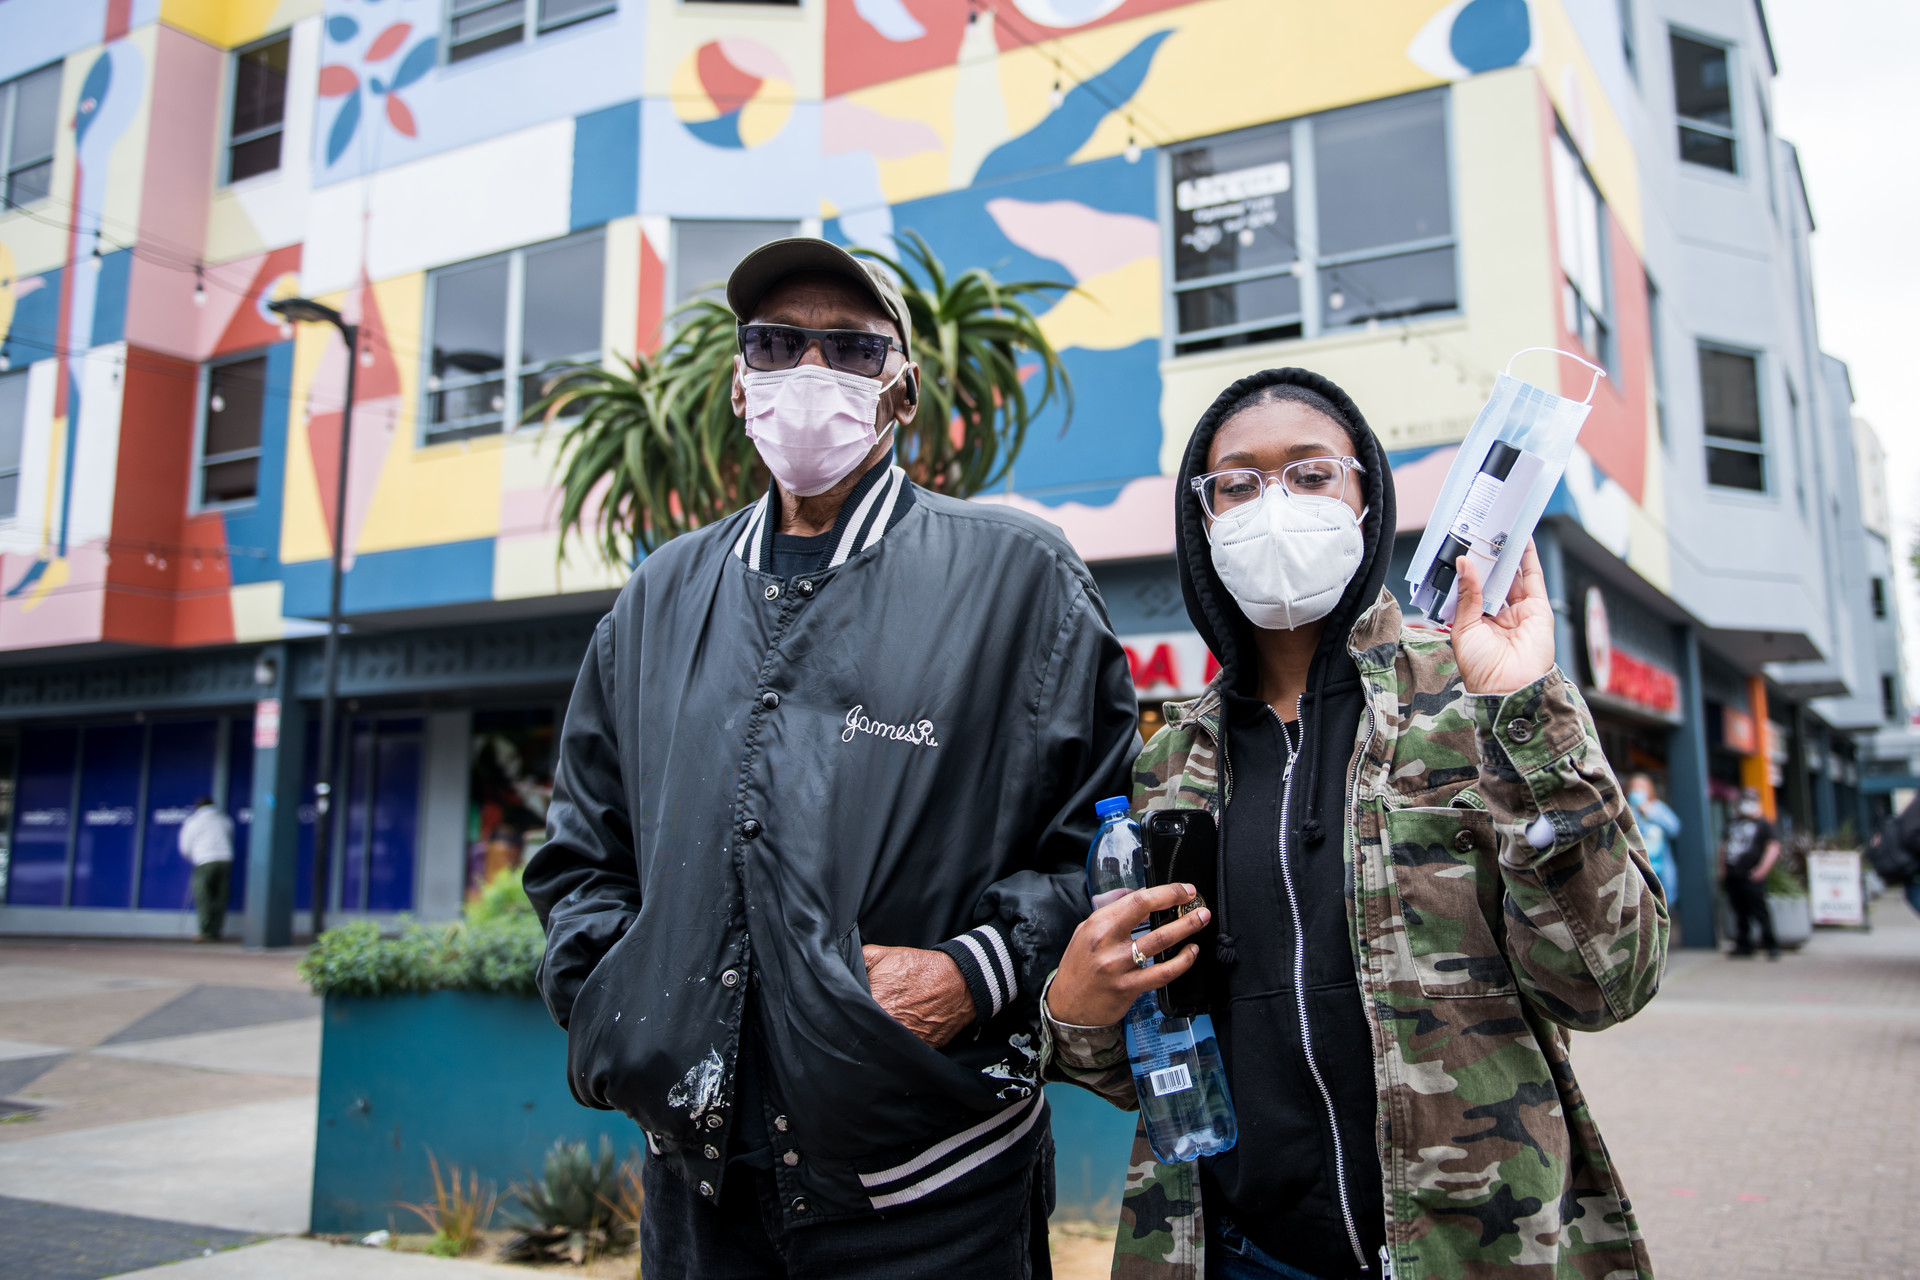 Chelsea Riley (right) and her father James Riley line up to receive free hand sanitizer and a face mask in the Fillmore on April 17, 2020.